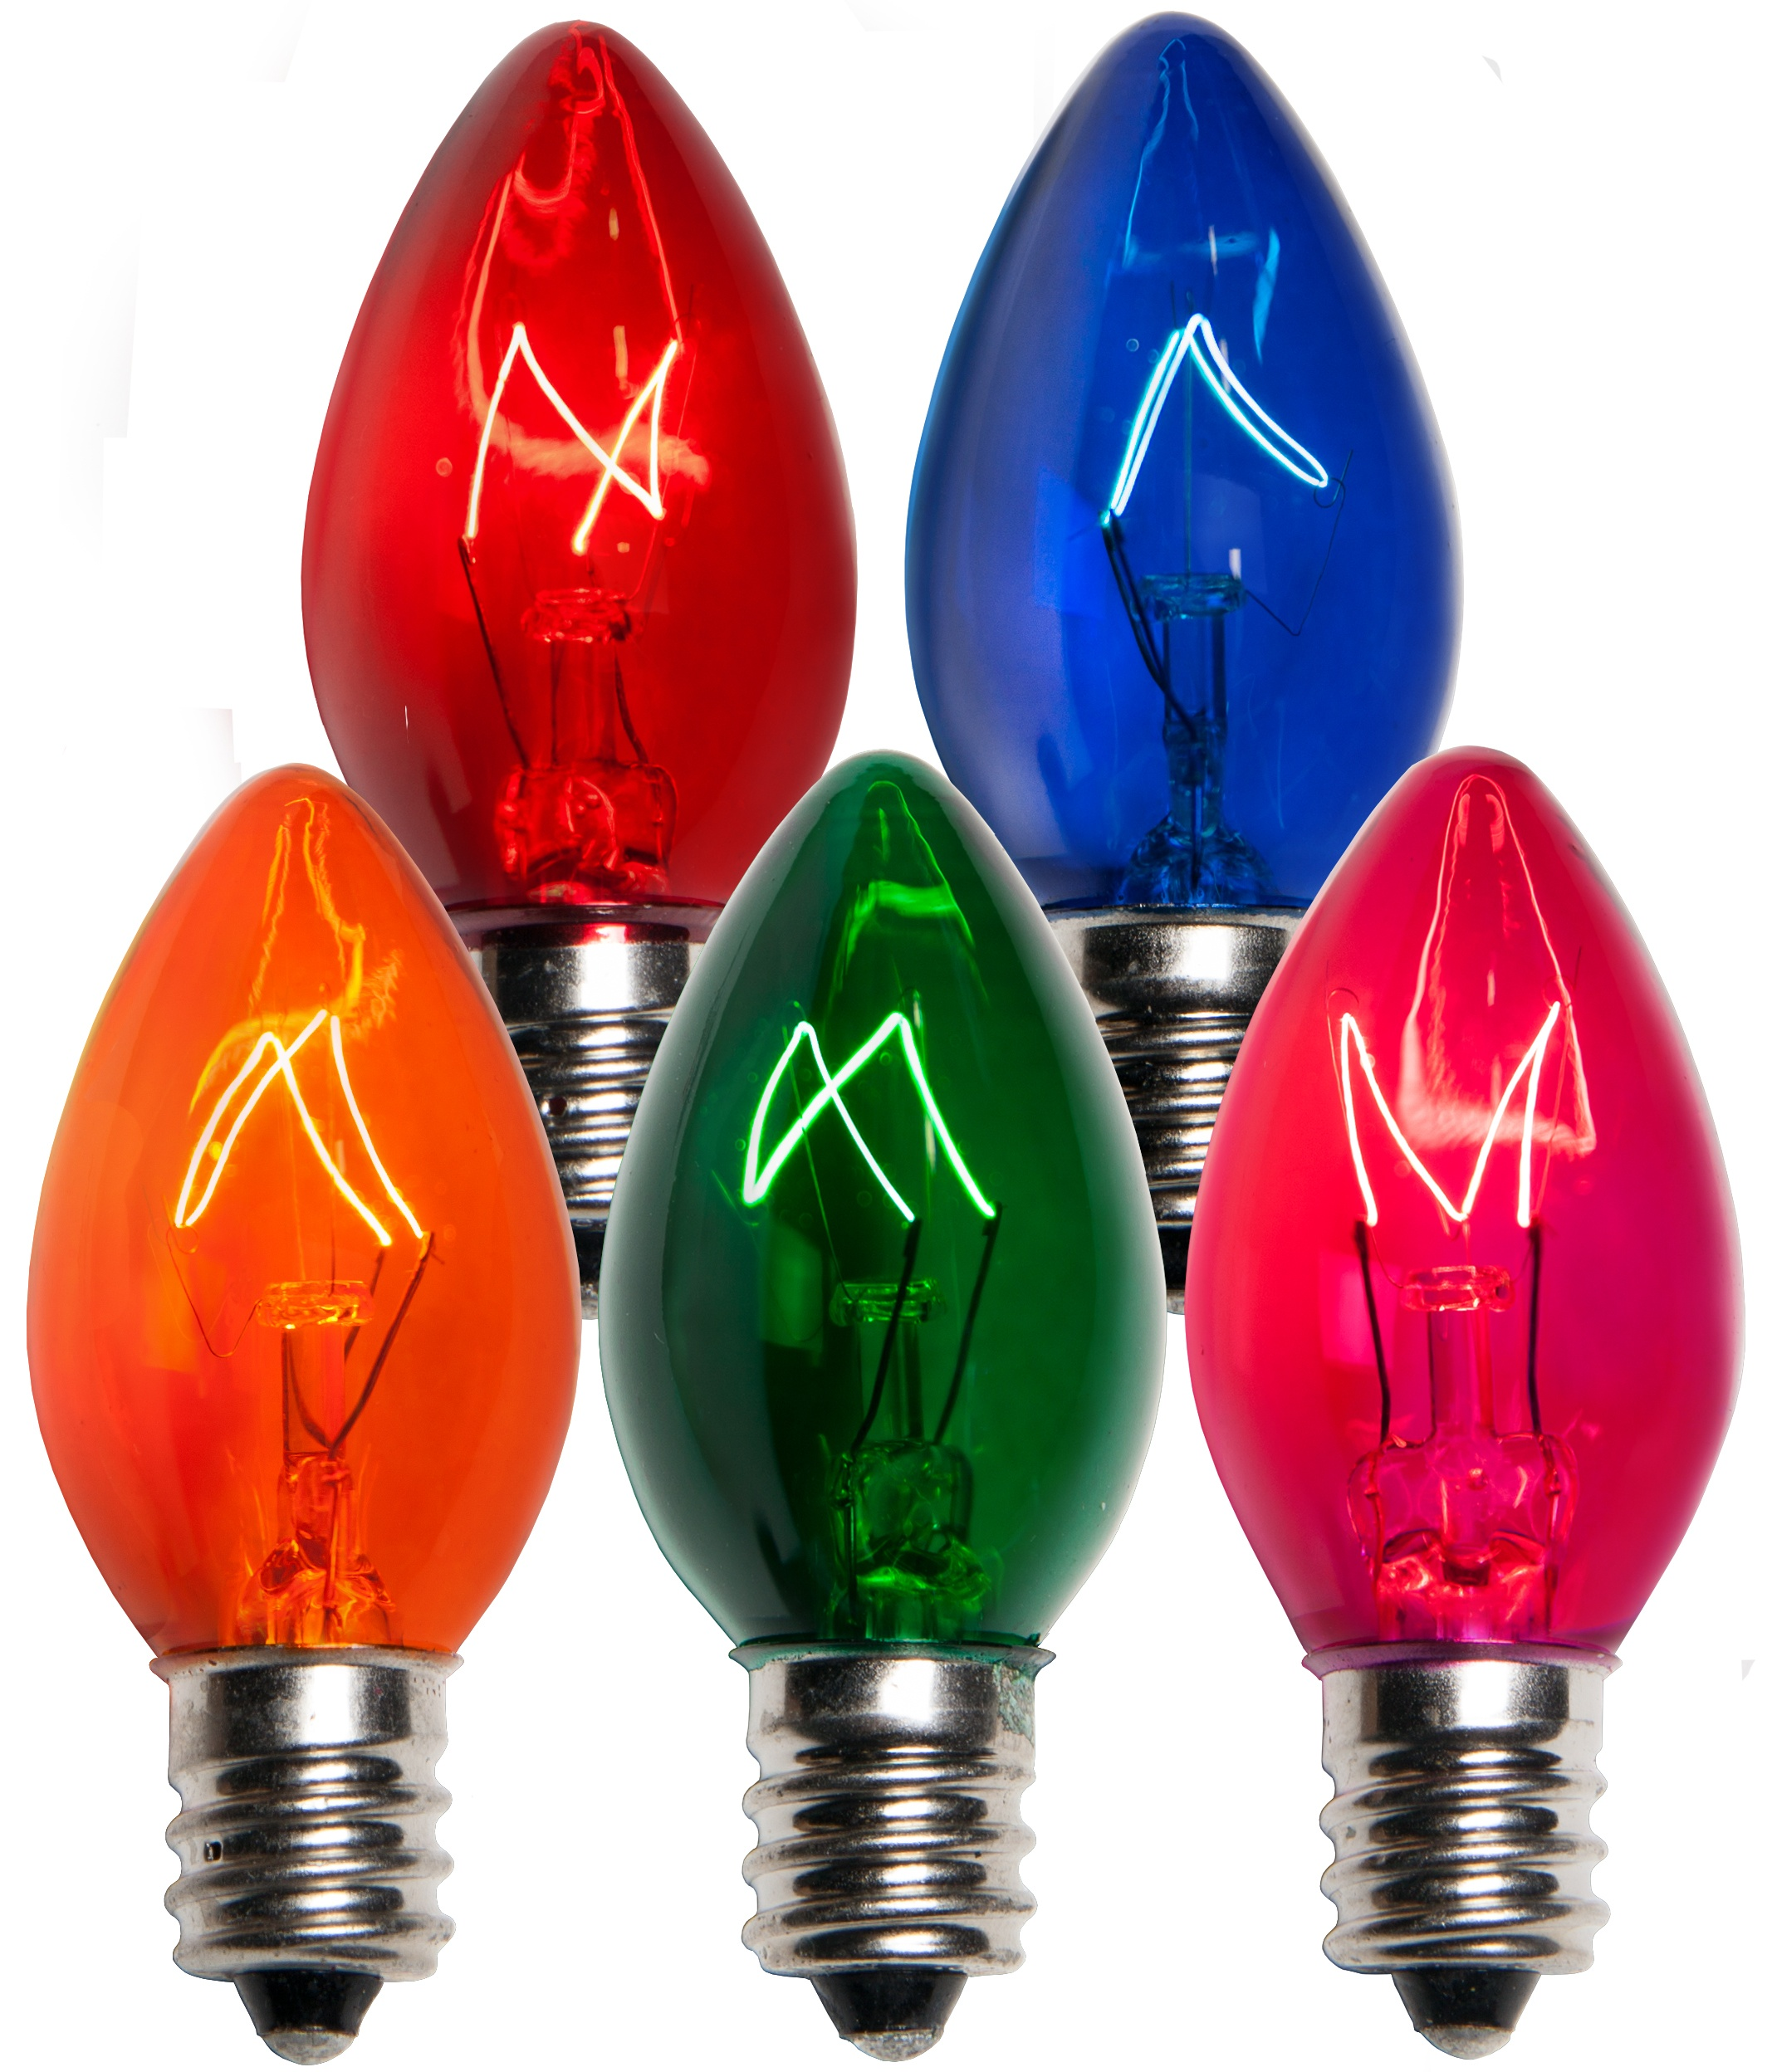 c7 christmas light bulb c7 multicolor christmas light bulbs. Black Bedroom Furniture Sets. Home Design Ideas